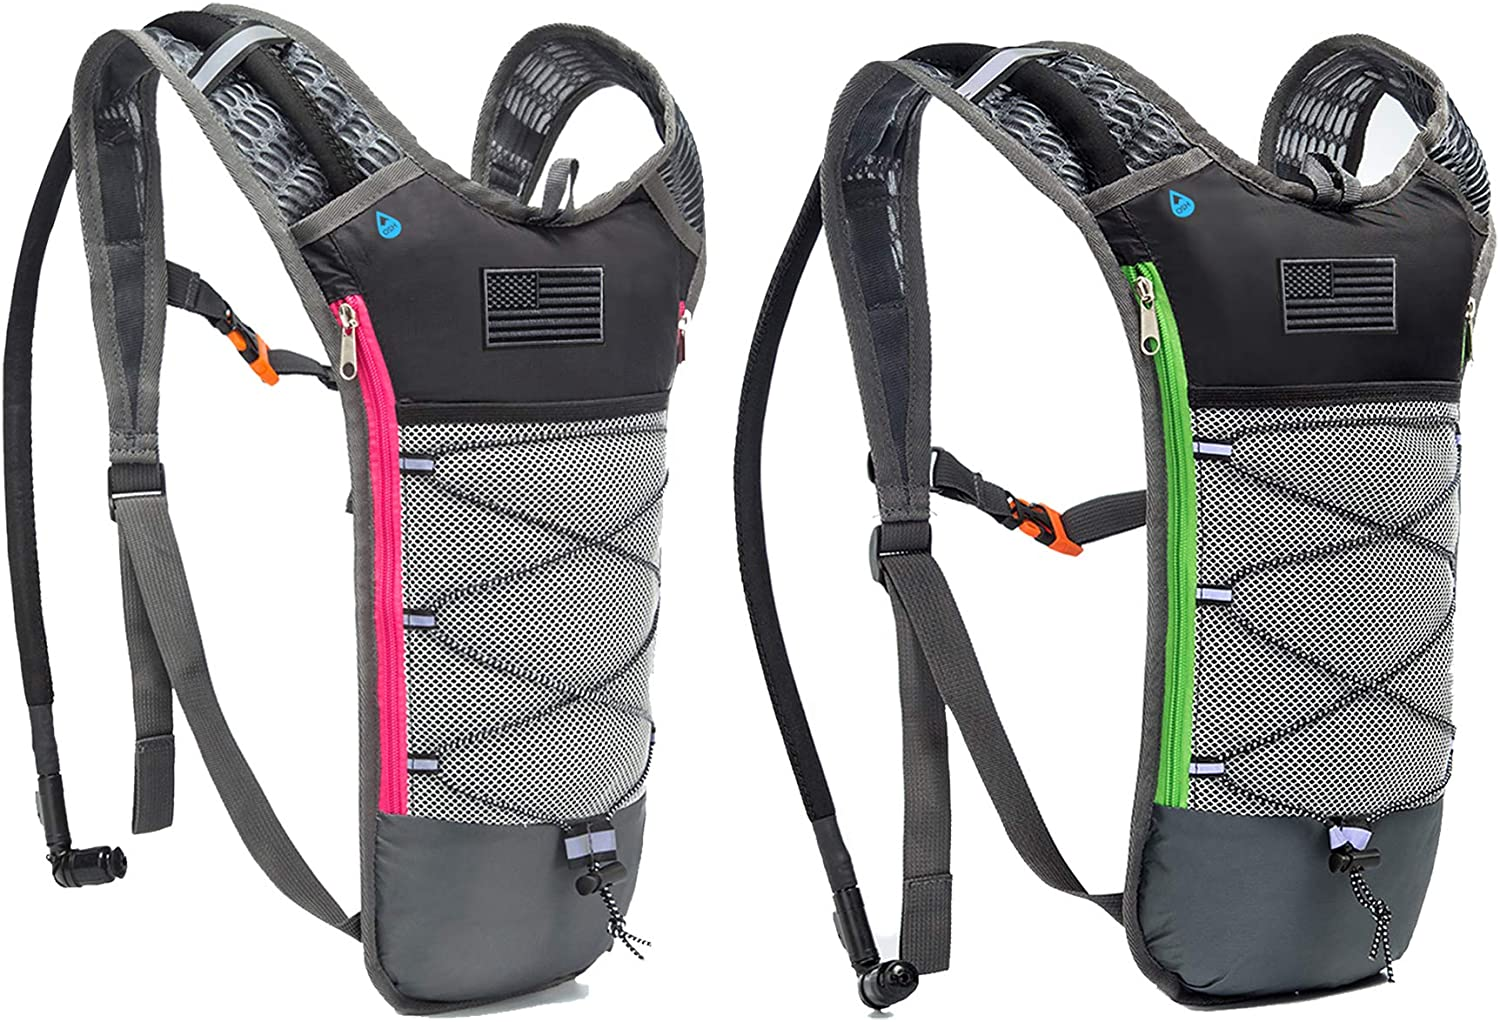 J.CARP 2 Pack Hydration Bladder with 2L Max 81% OFF Department store Backpack